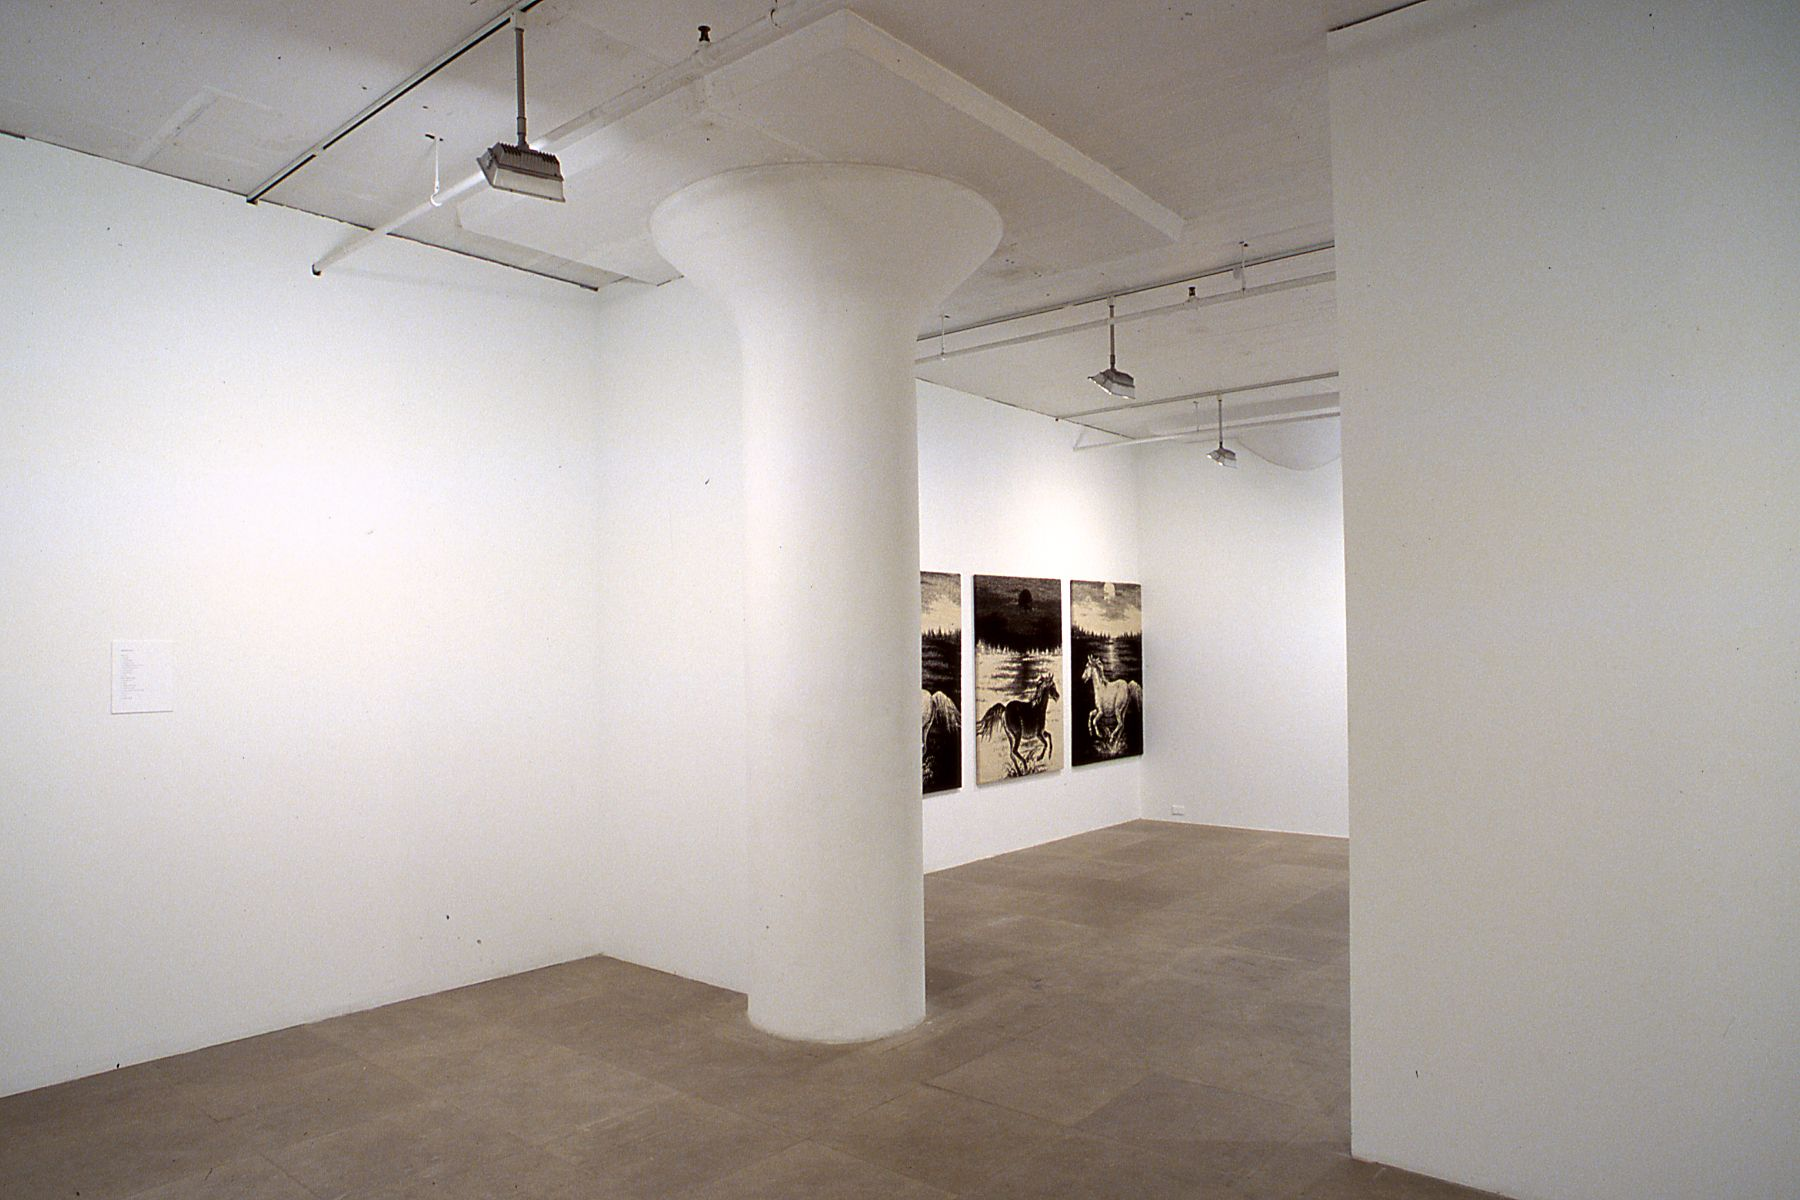 Installation view, Flaggs (Against Nature), Greene Naftali, New York, 2003